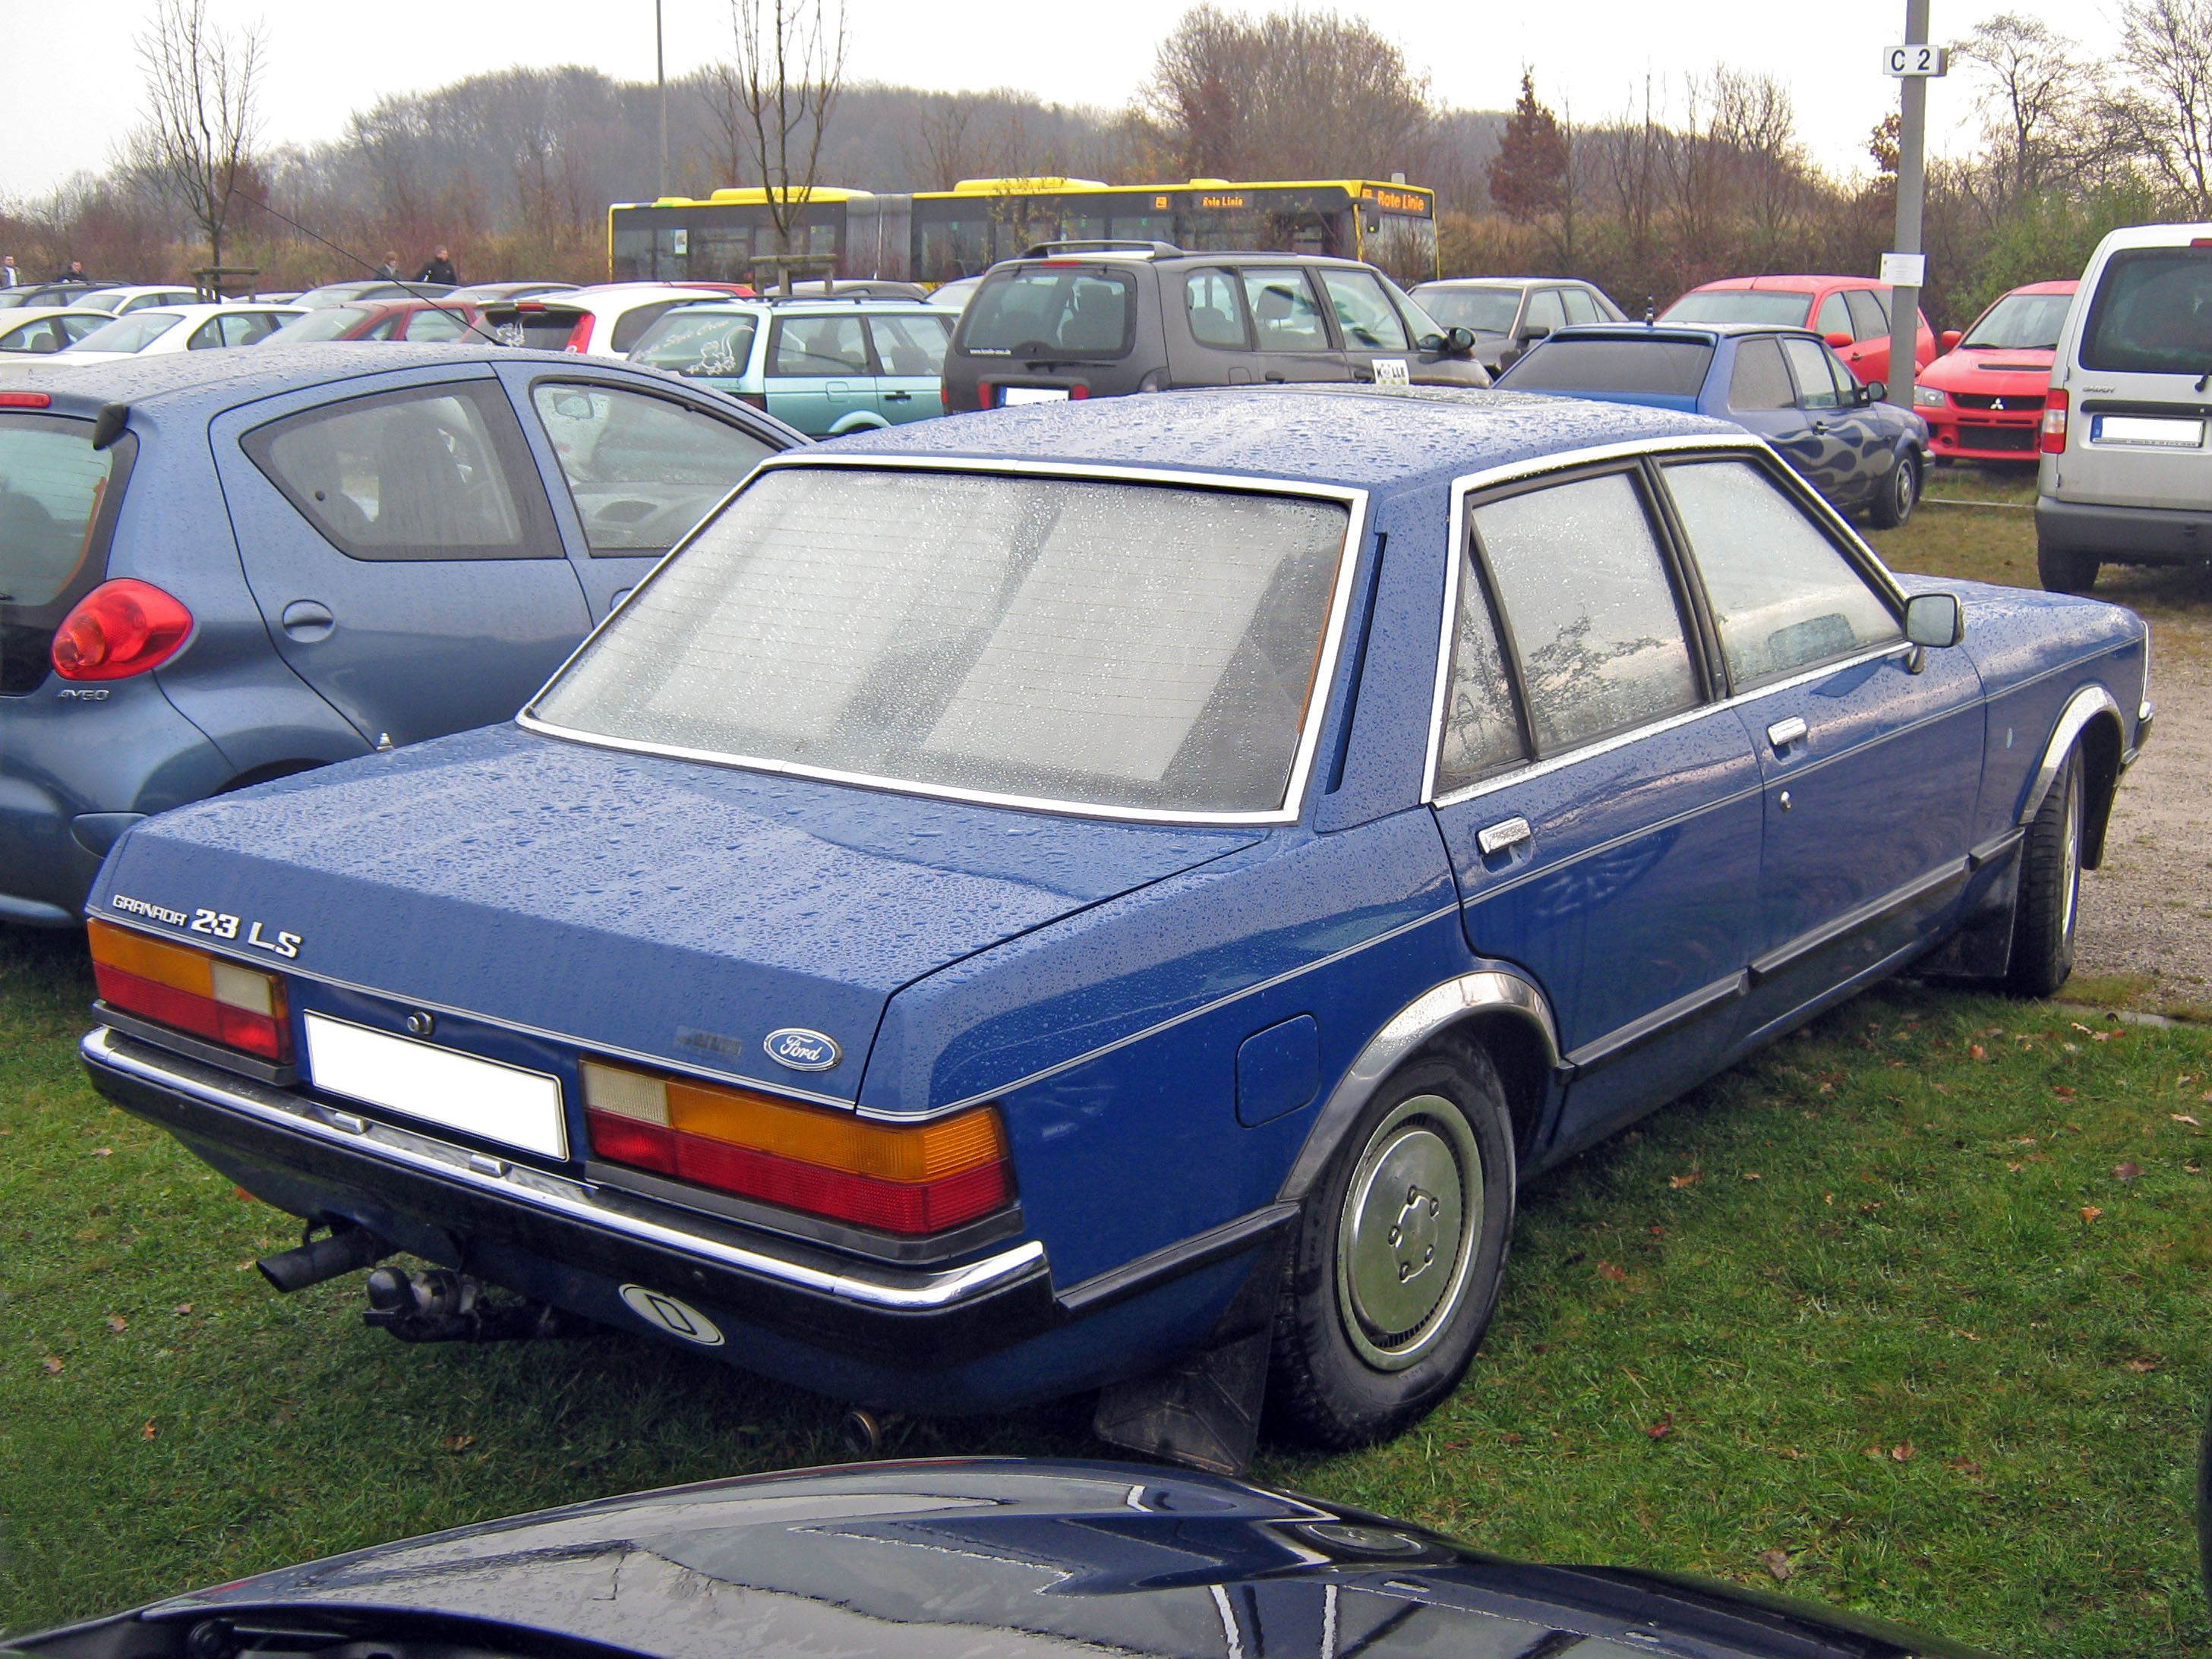 File:Ford Granada Limousine 4T Heck.JPG - Wikimedia Commons